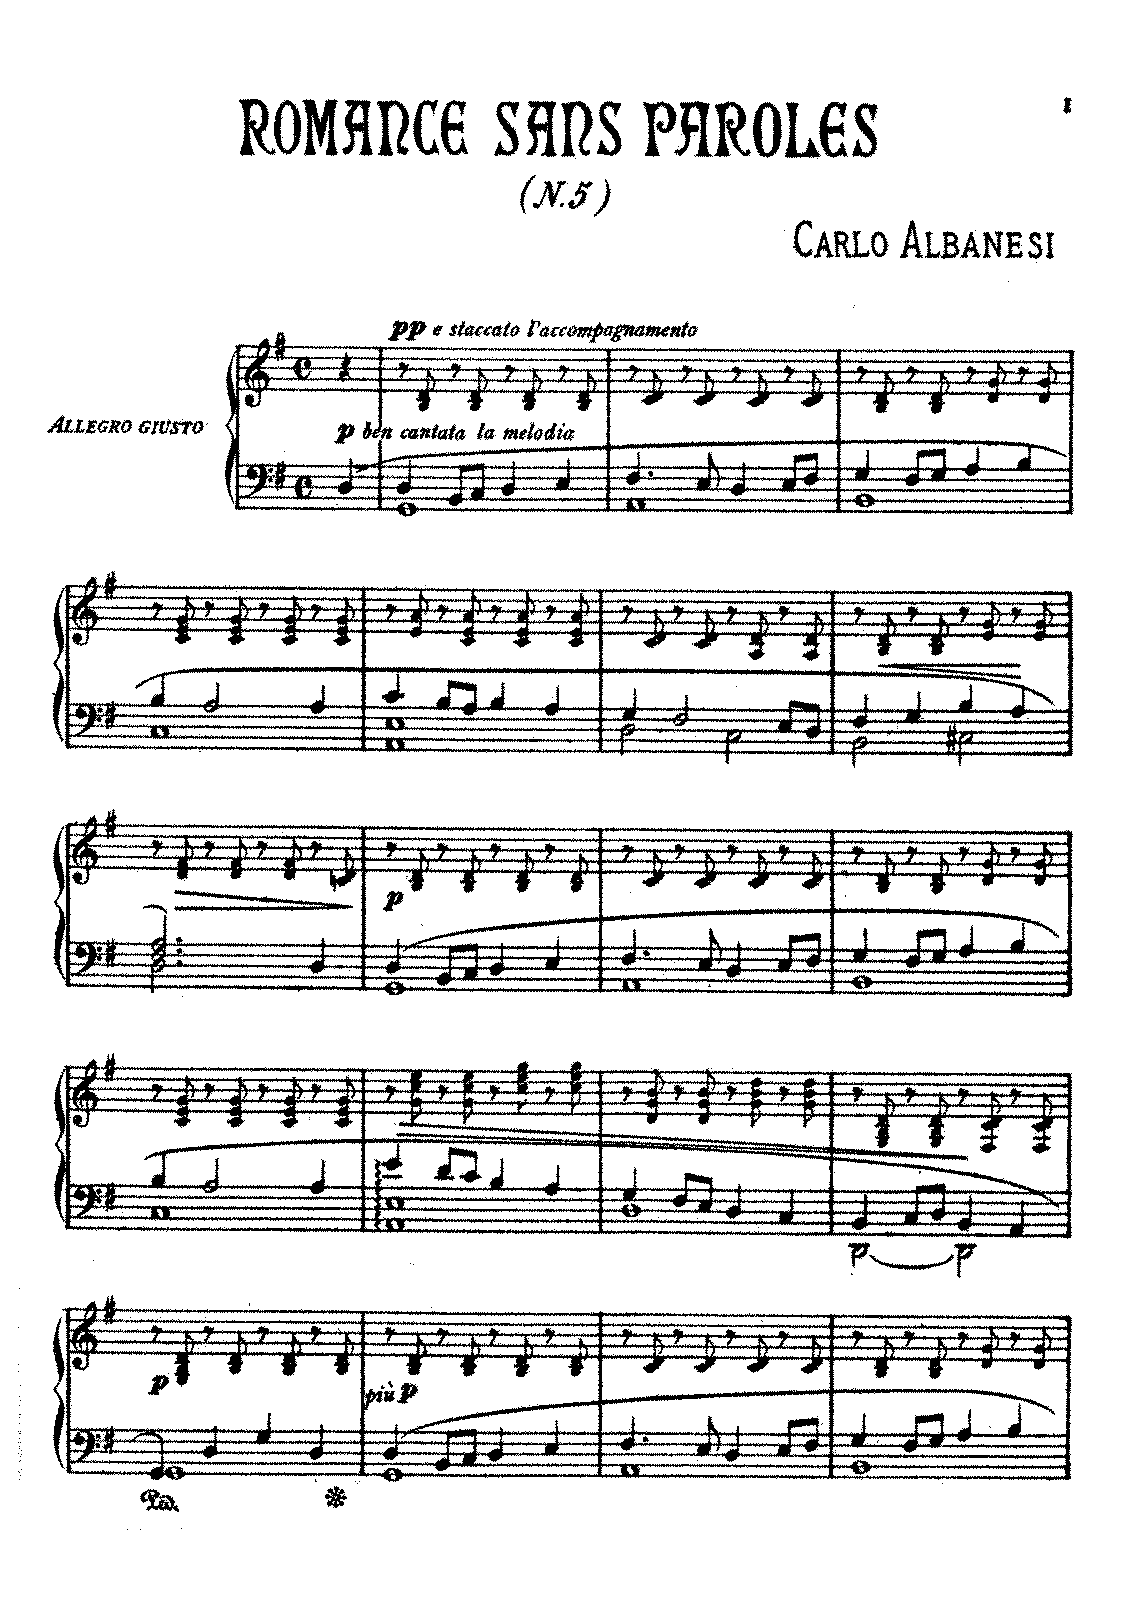 PMLP354691-Albanesi, Carlo - 1856-1930 - Romance sans paroles no 5.pdf